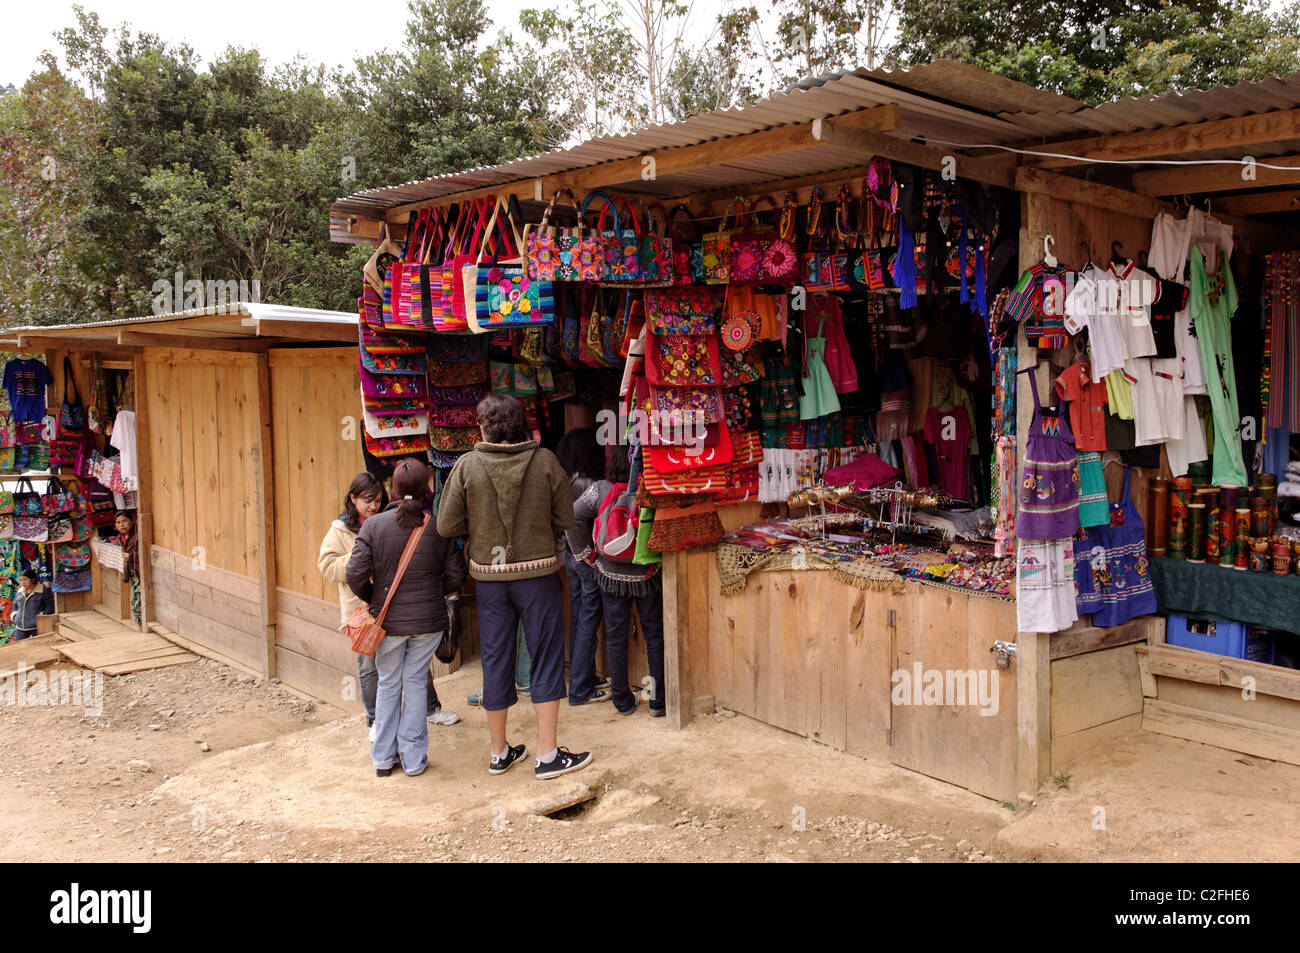 Bags Clothes And Handicrafts Shop In Guatemala Stock Photo